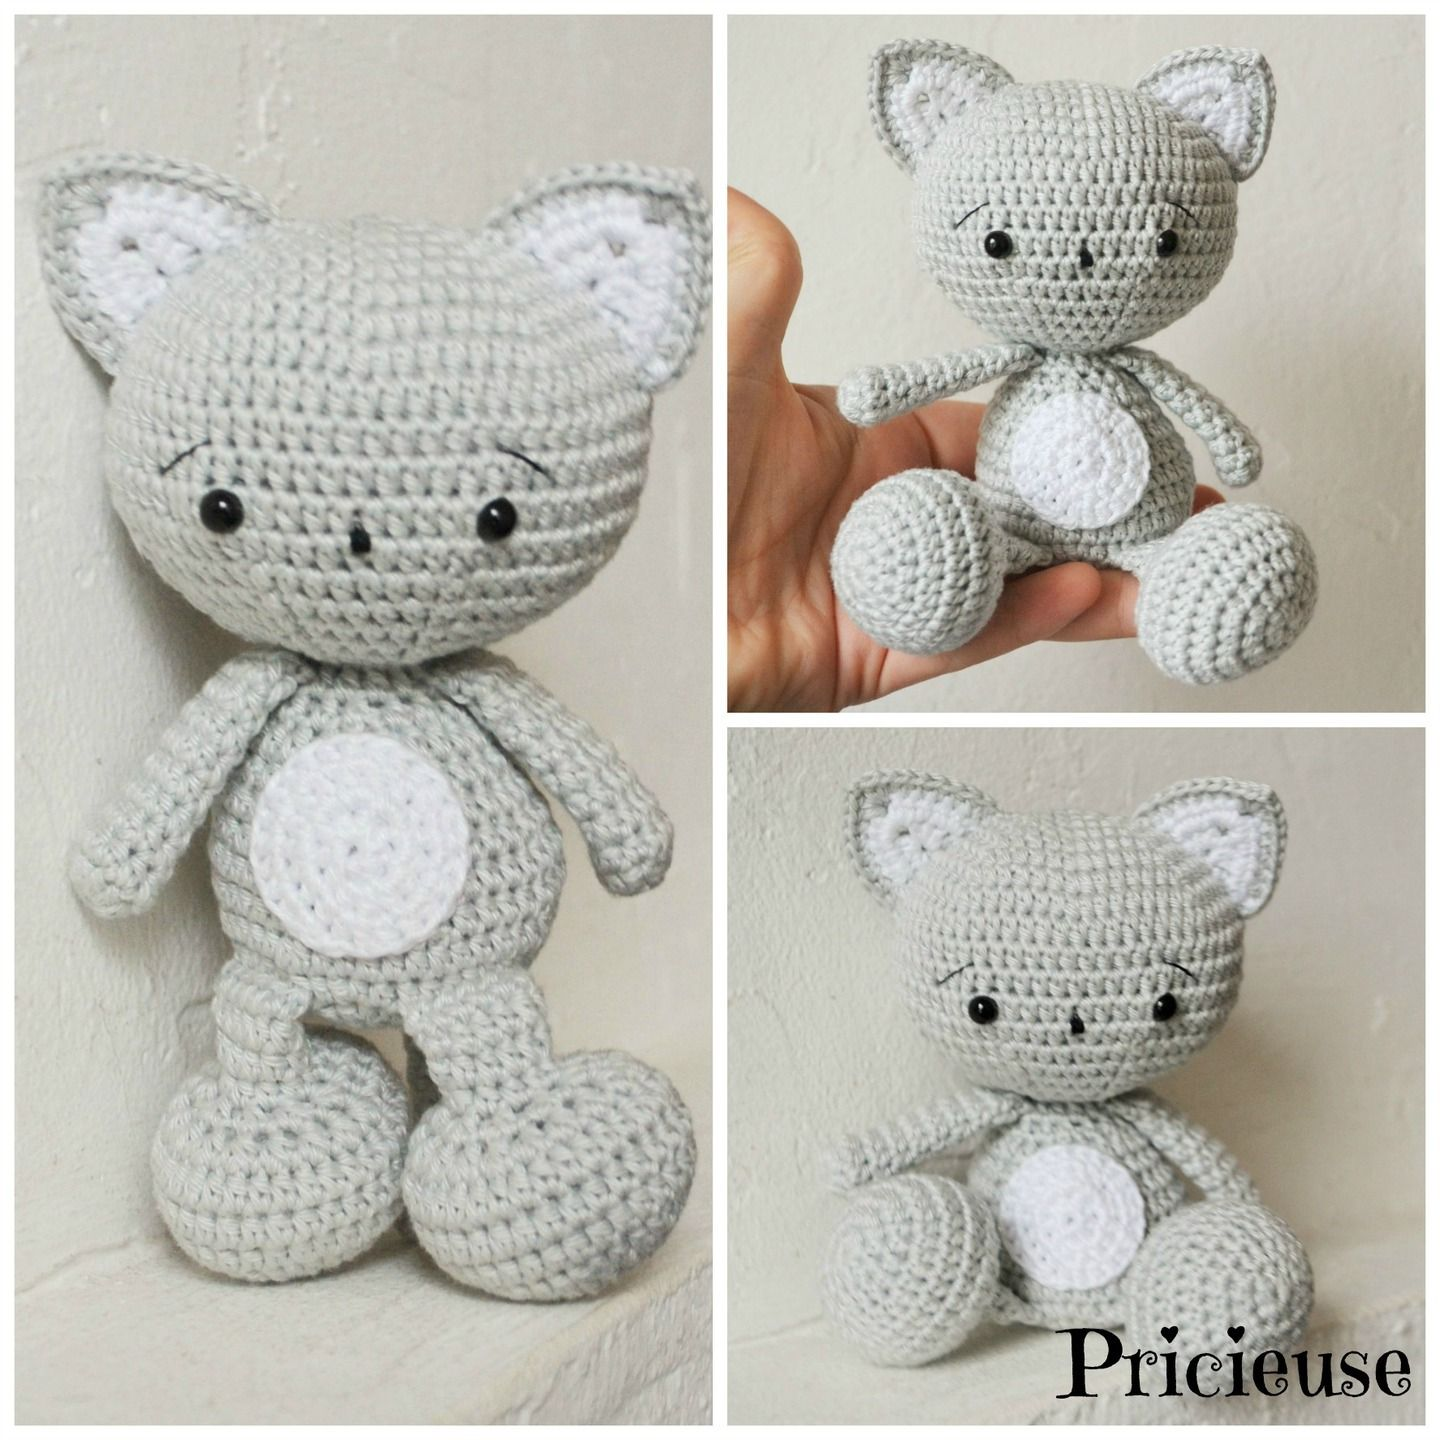 amigurumi doudou chat au crochet gris et blanc jeux jouets par pricieuse crochet amigurumi. Black Bedroom Furniture Sets. Home Design Ideas